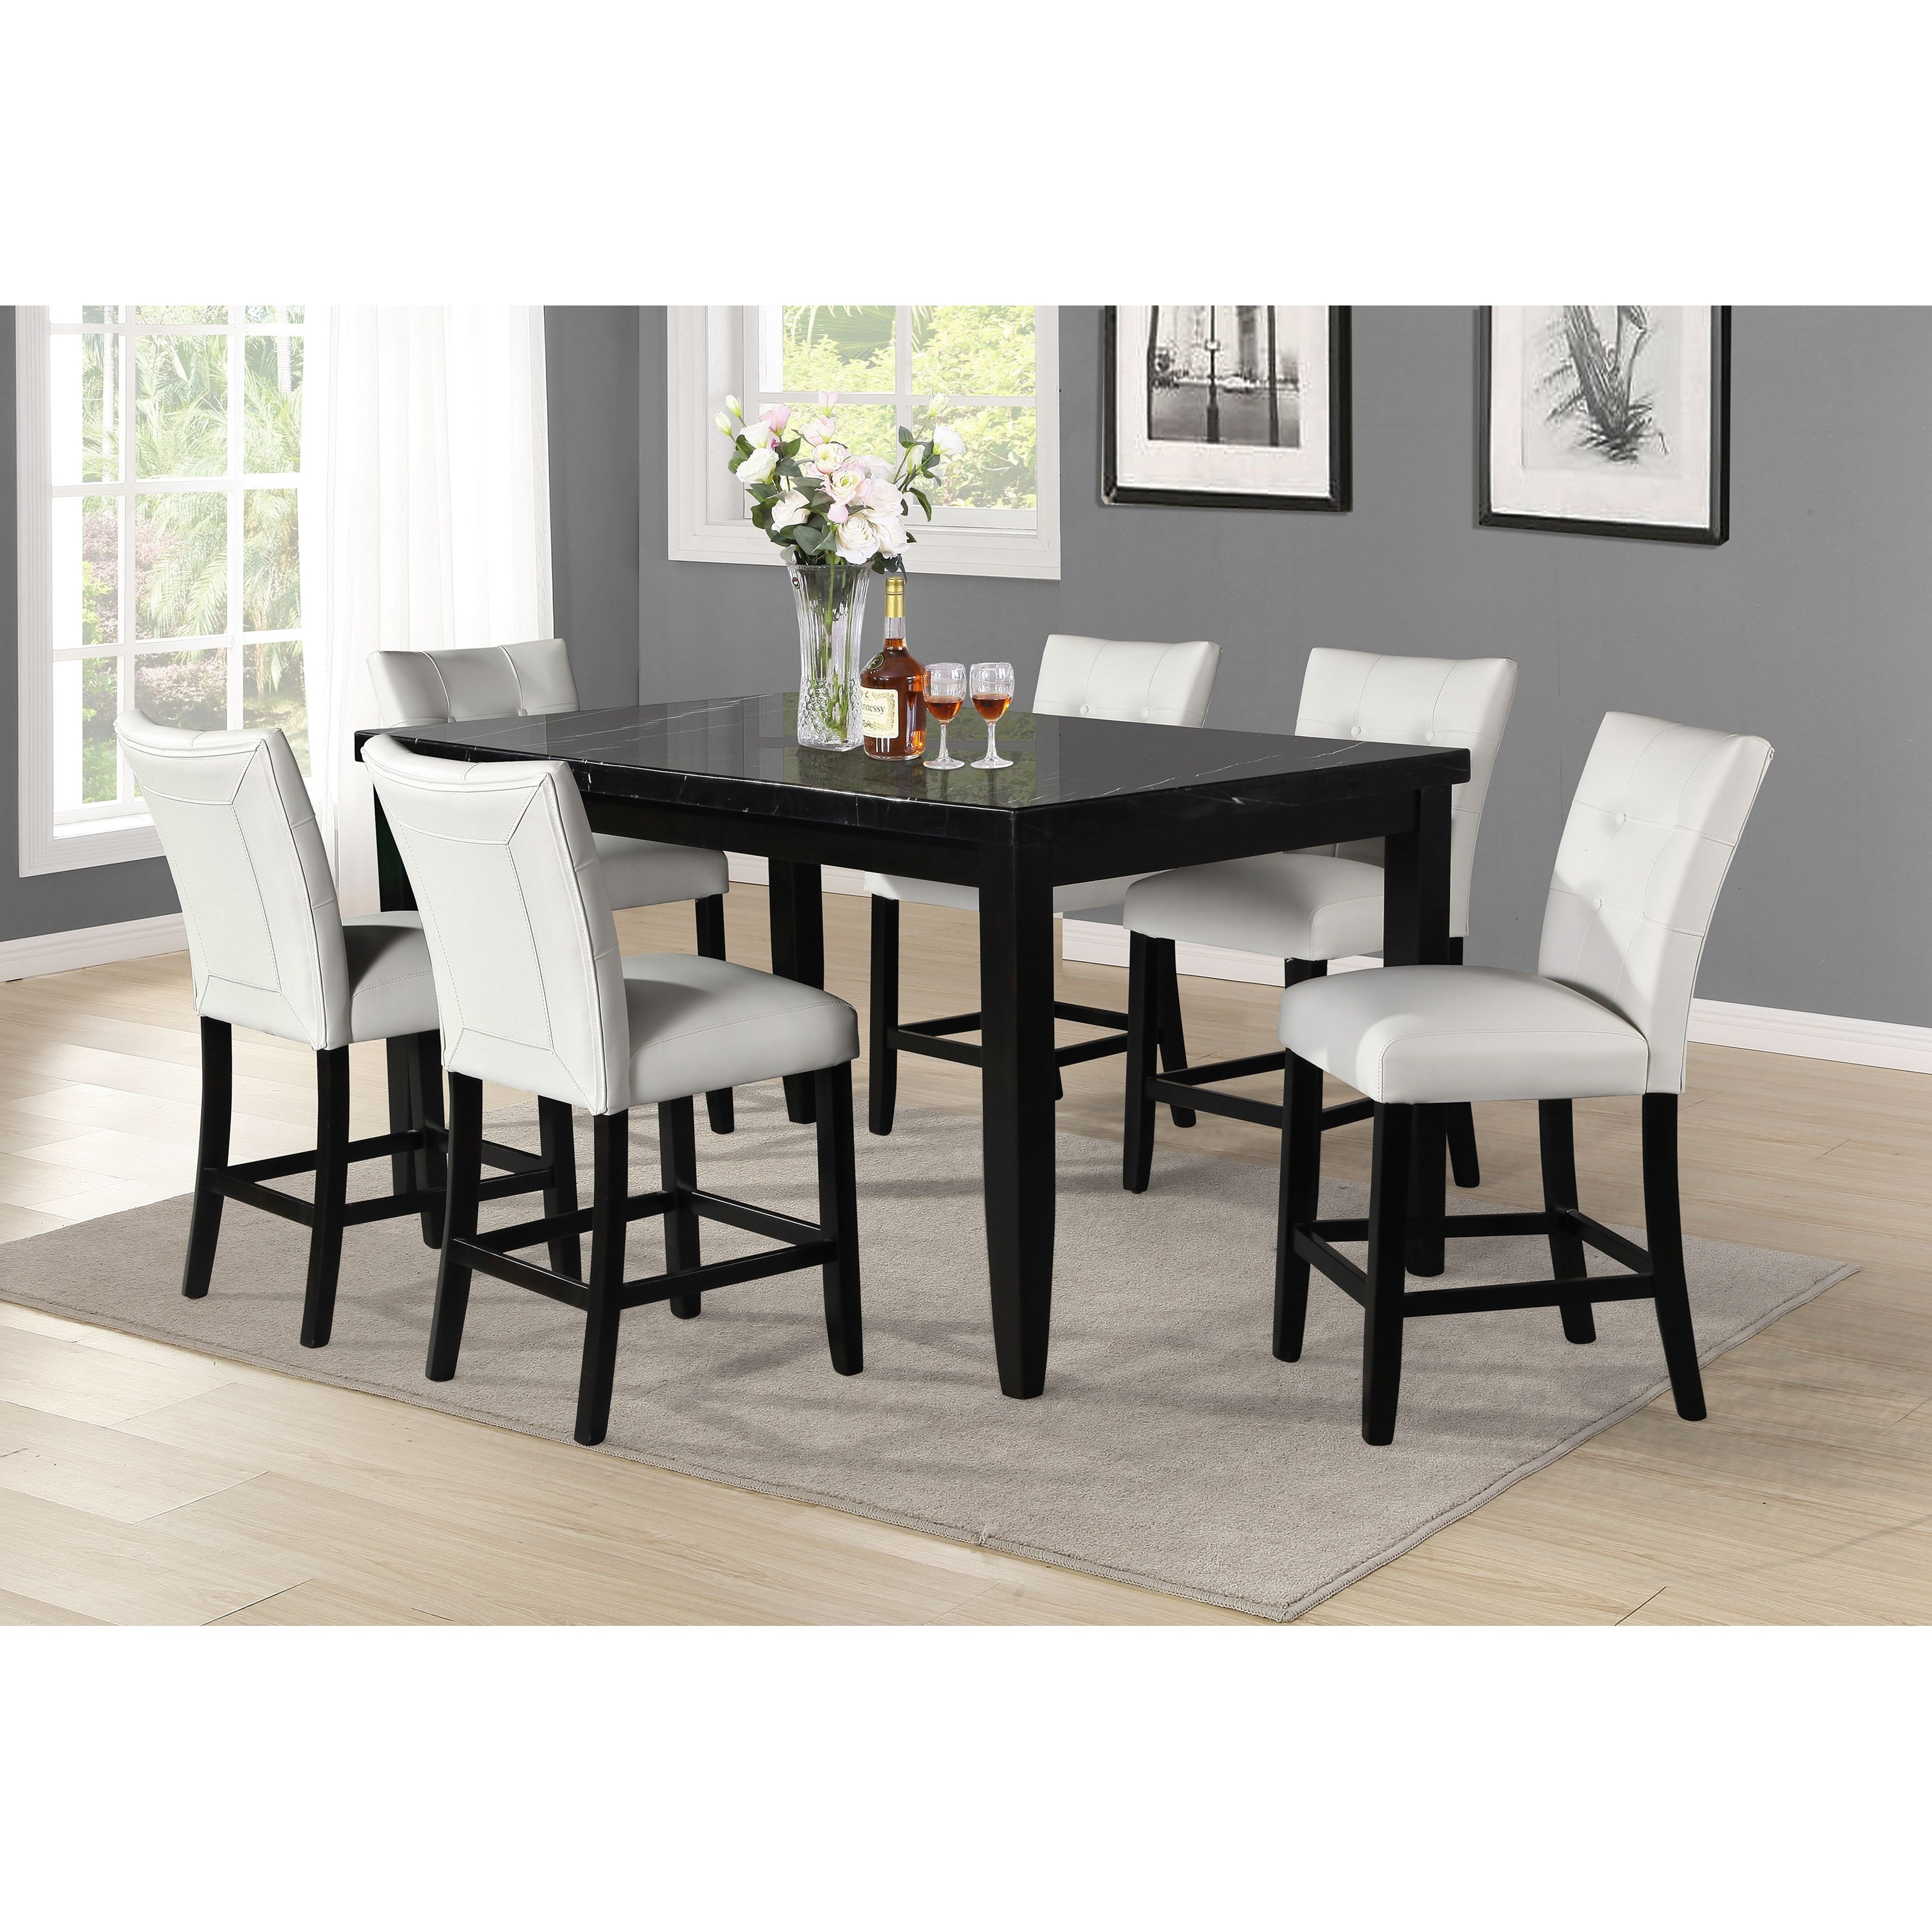 Markina 7-Piece Counter Table and Chair Set by Steve Silver at Northeast Factory Direct